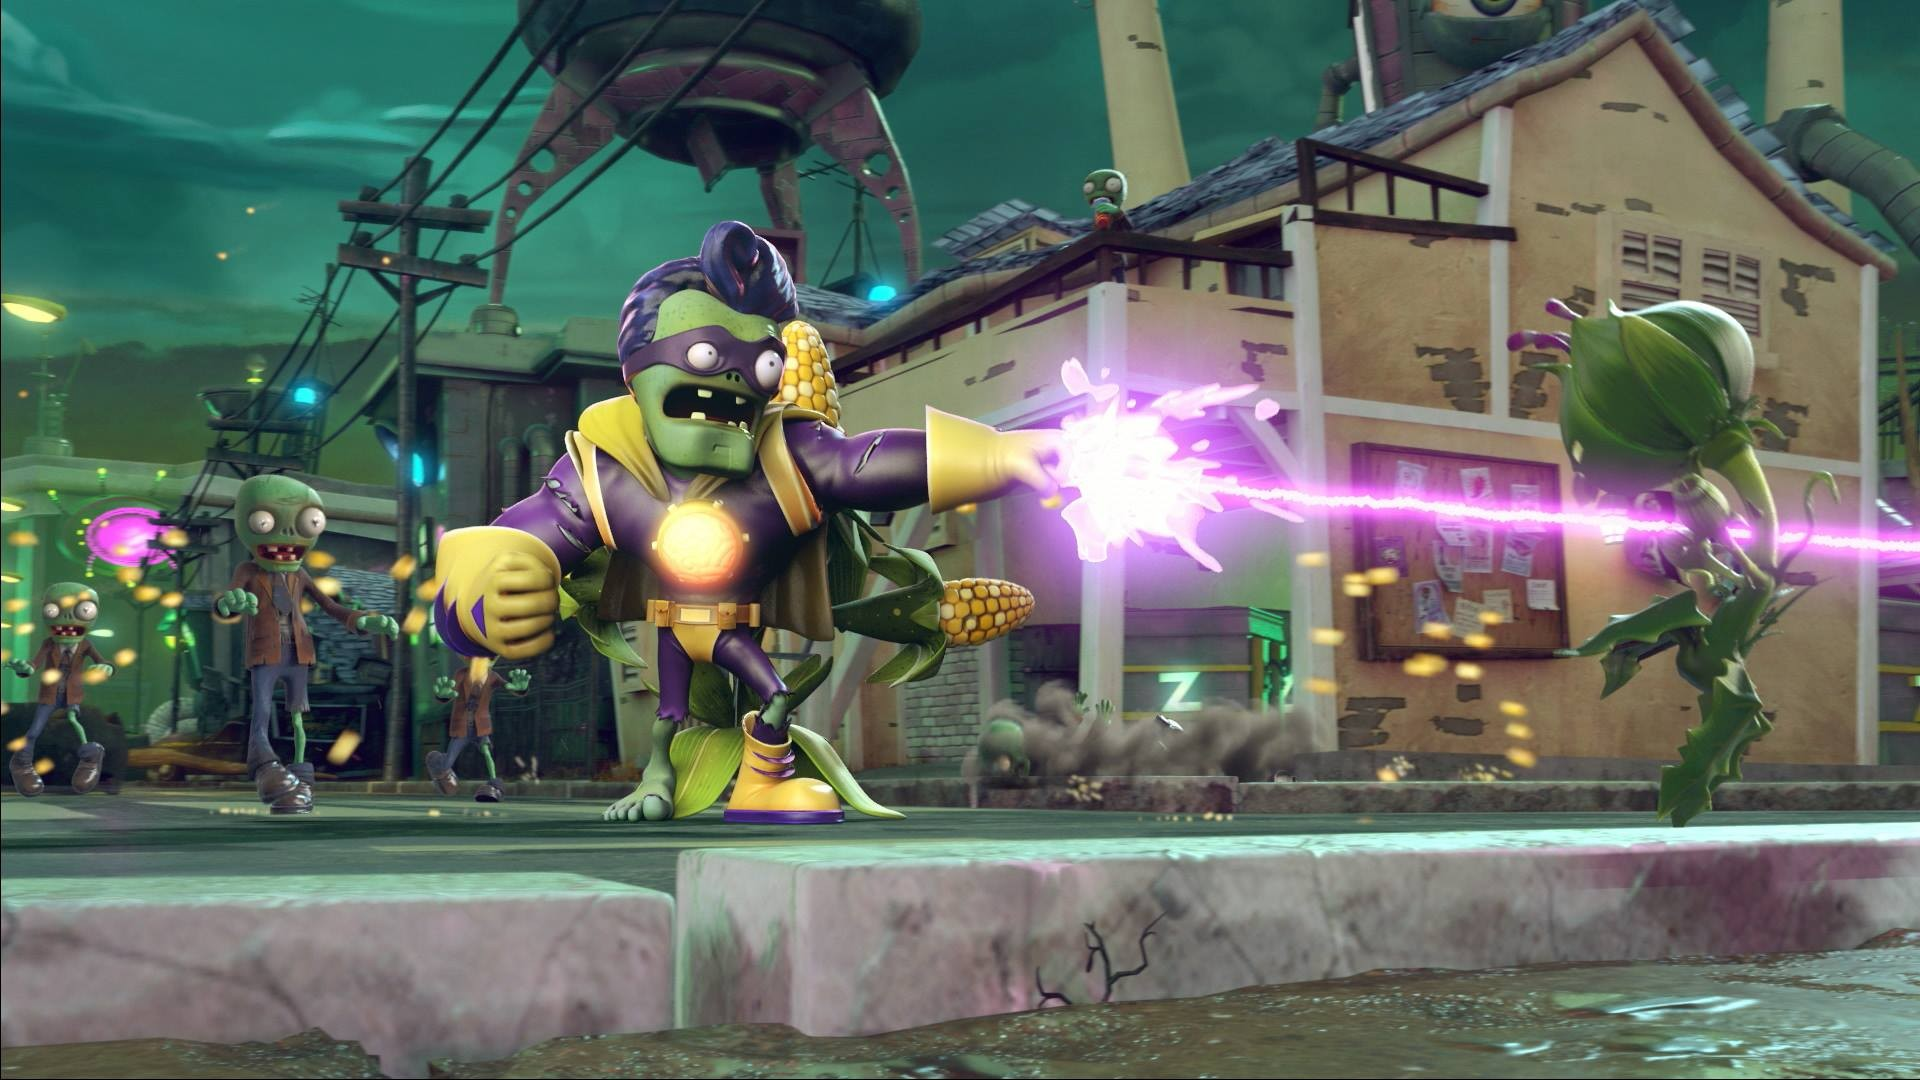 Zombies: Garden Warfare 2 3 Plants Vs. Zombies: Garden Warfare 2 4 ...